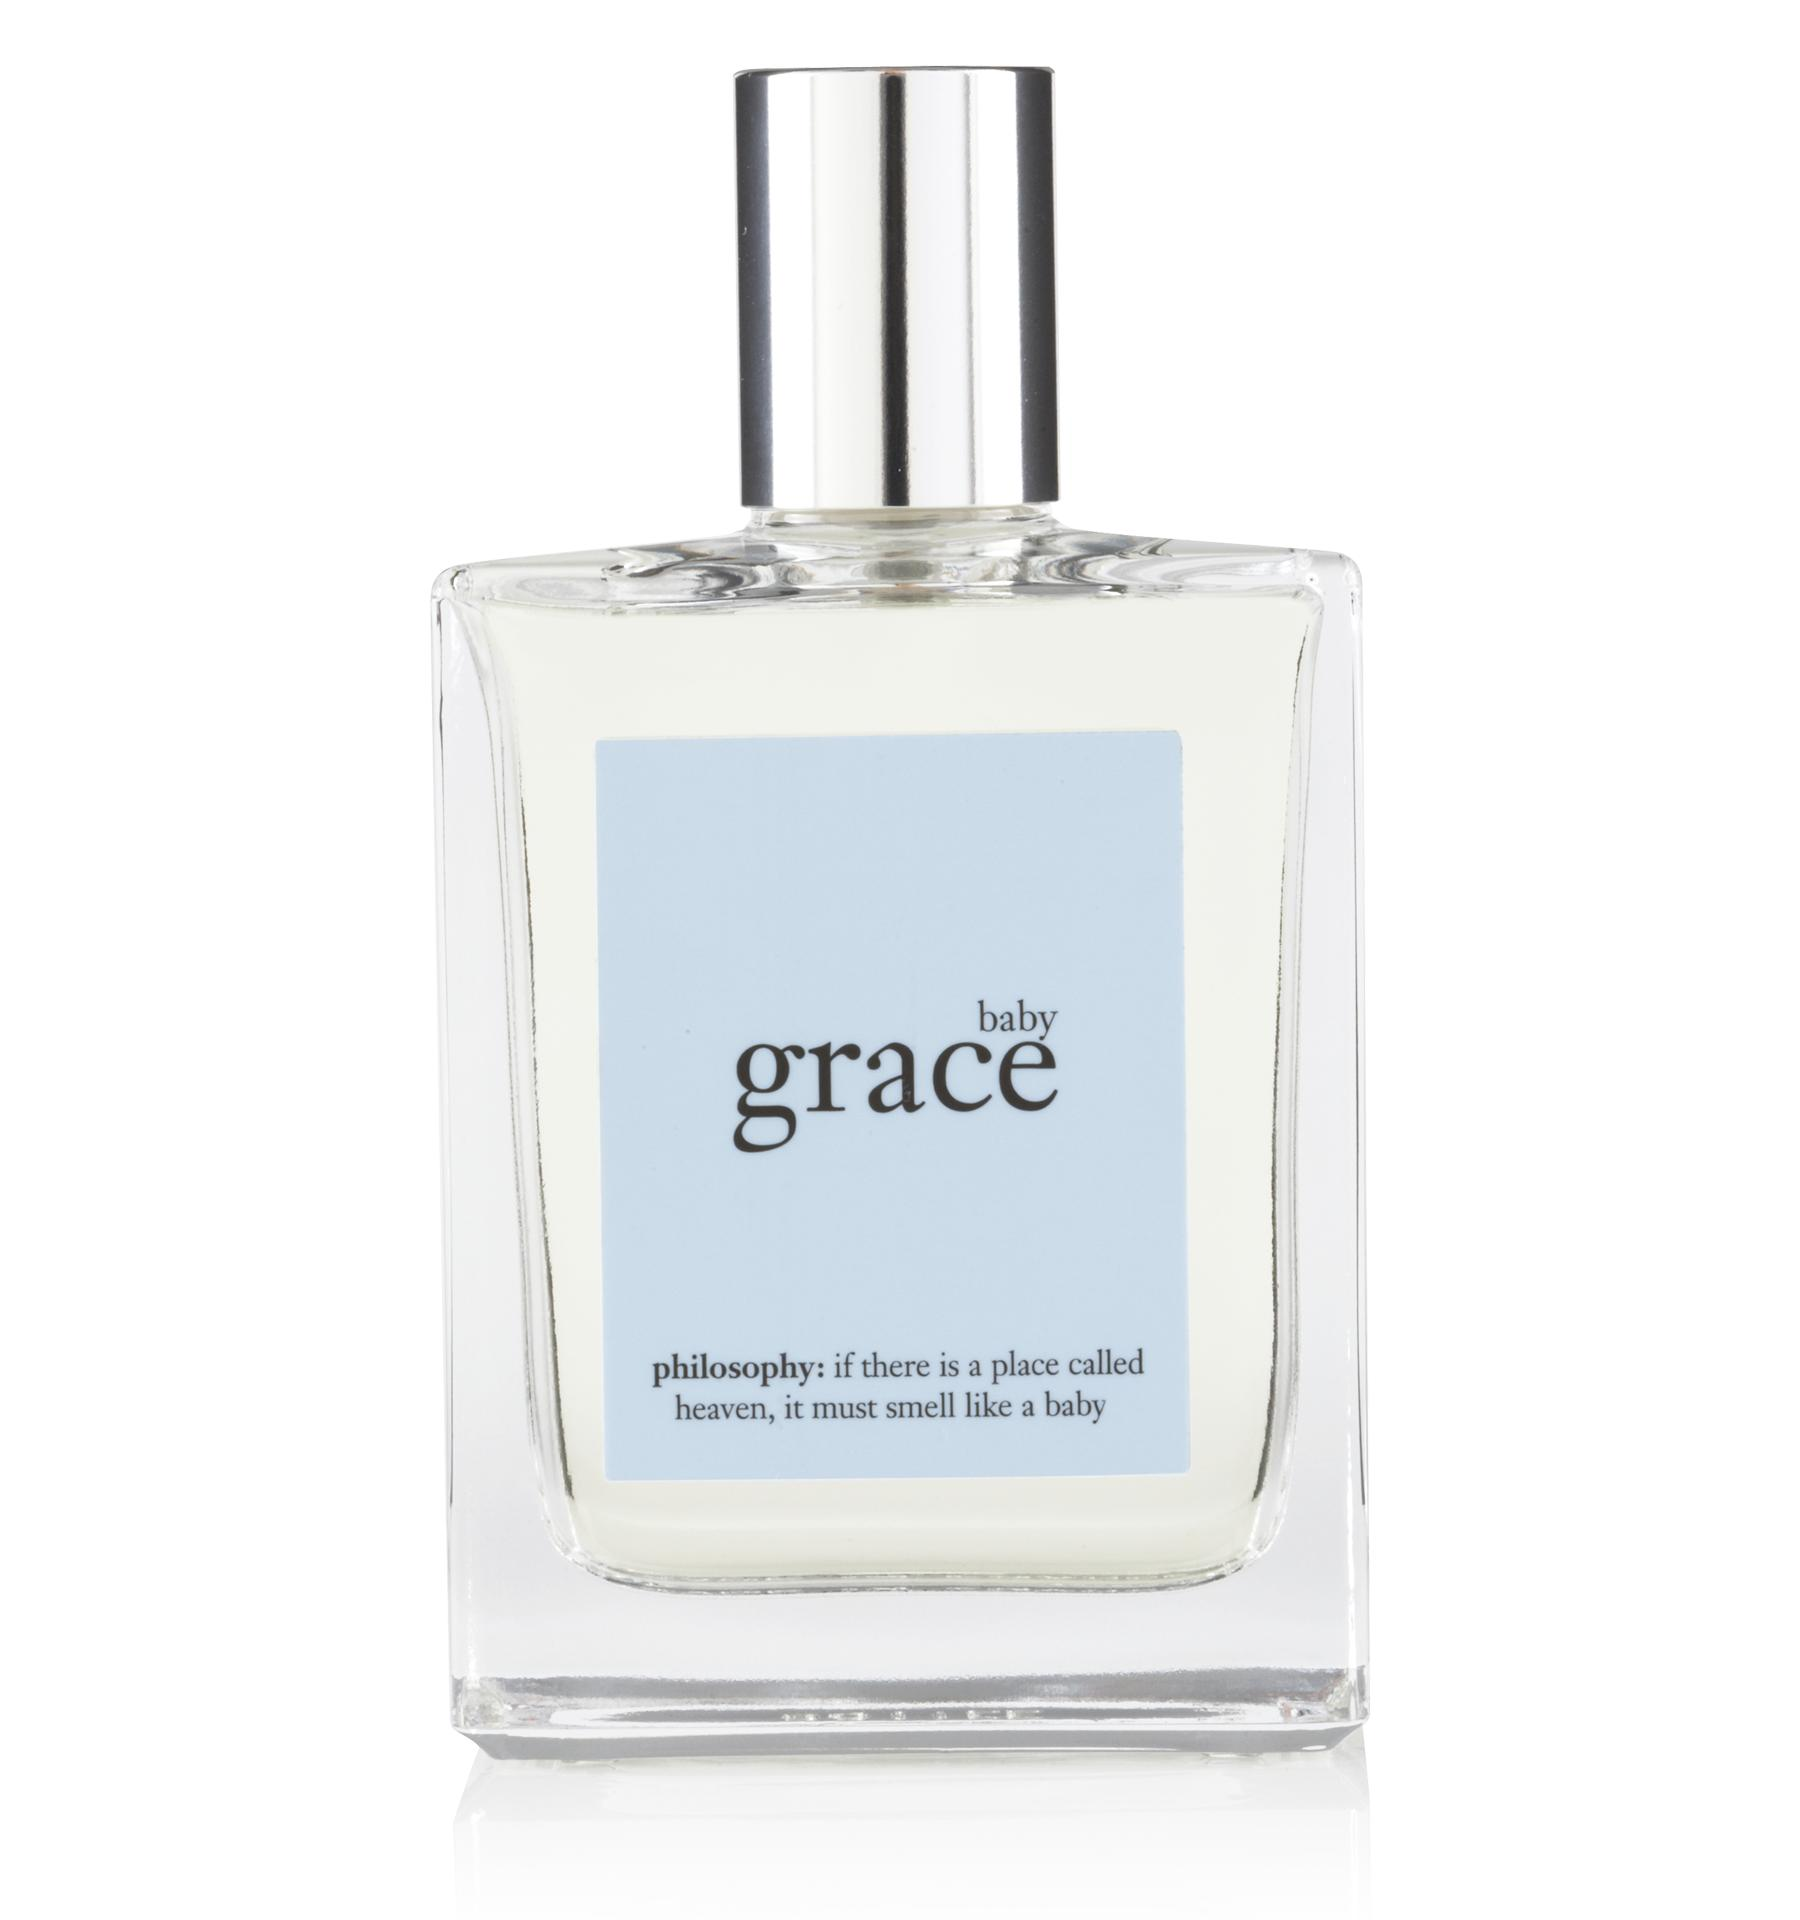 philosophy, baby grace fragrance